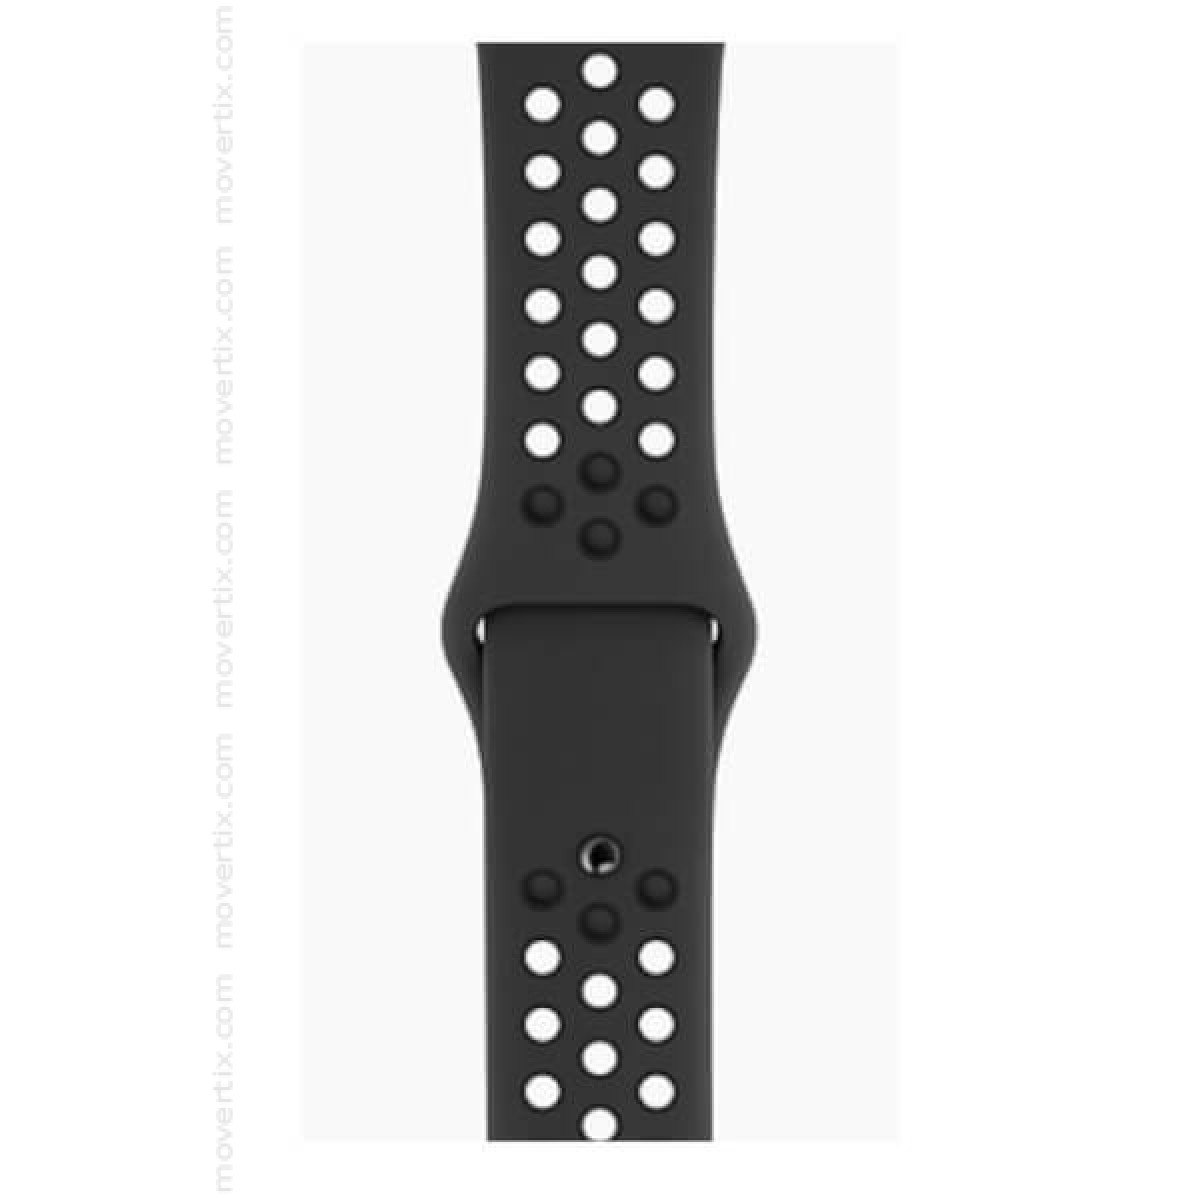 Permanente contenido Bebé  Apple Watch Nike+ Series 4 (GPS+Cellular) 44mm Space Grey with Black Nike  Band - MTXM2TY/A (0190198913401) | Movertix Mobile Phones Shop